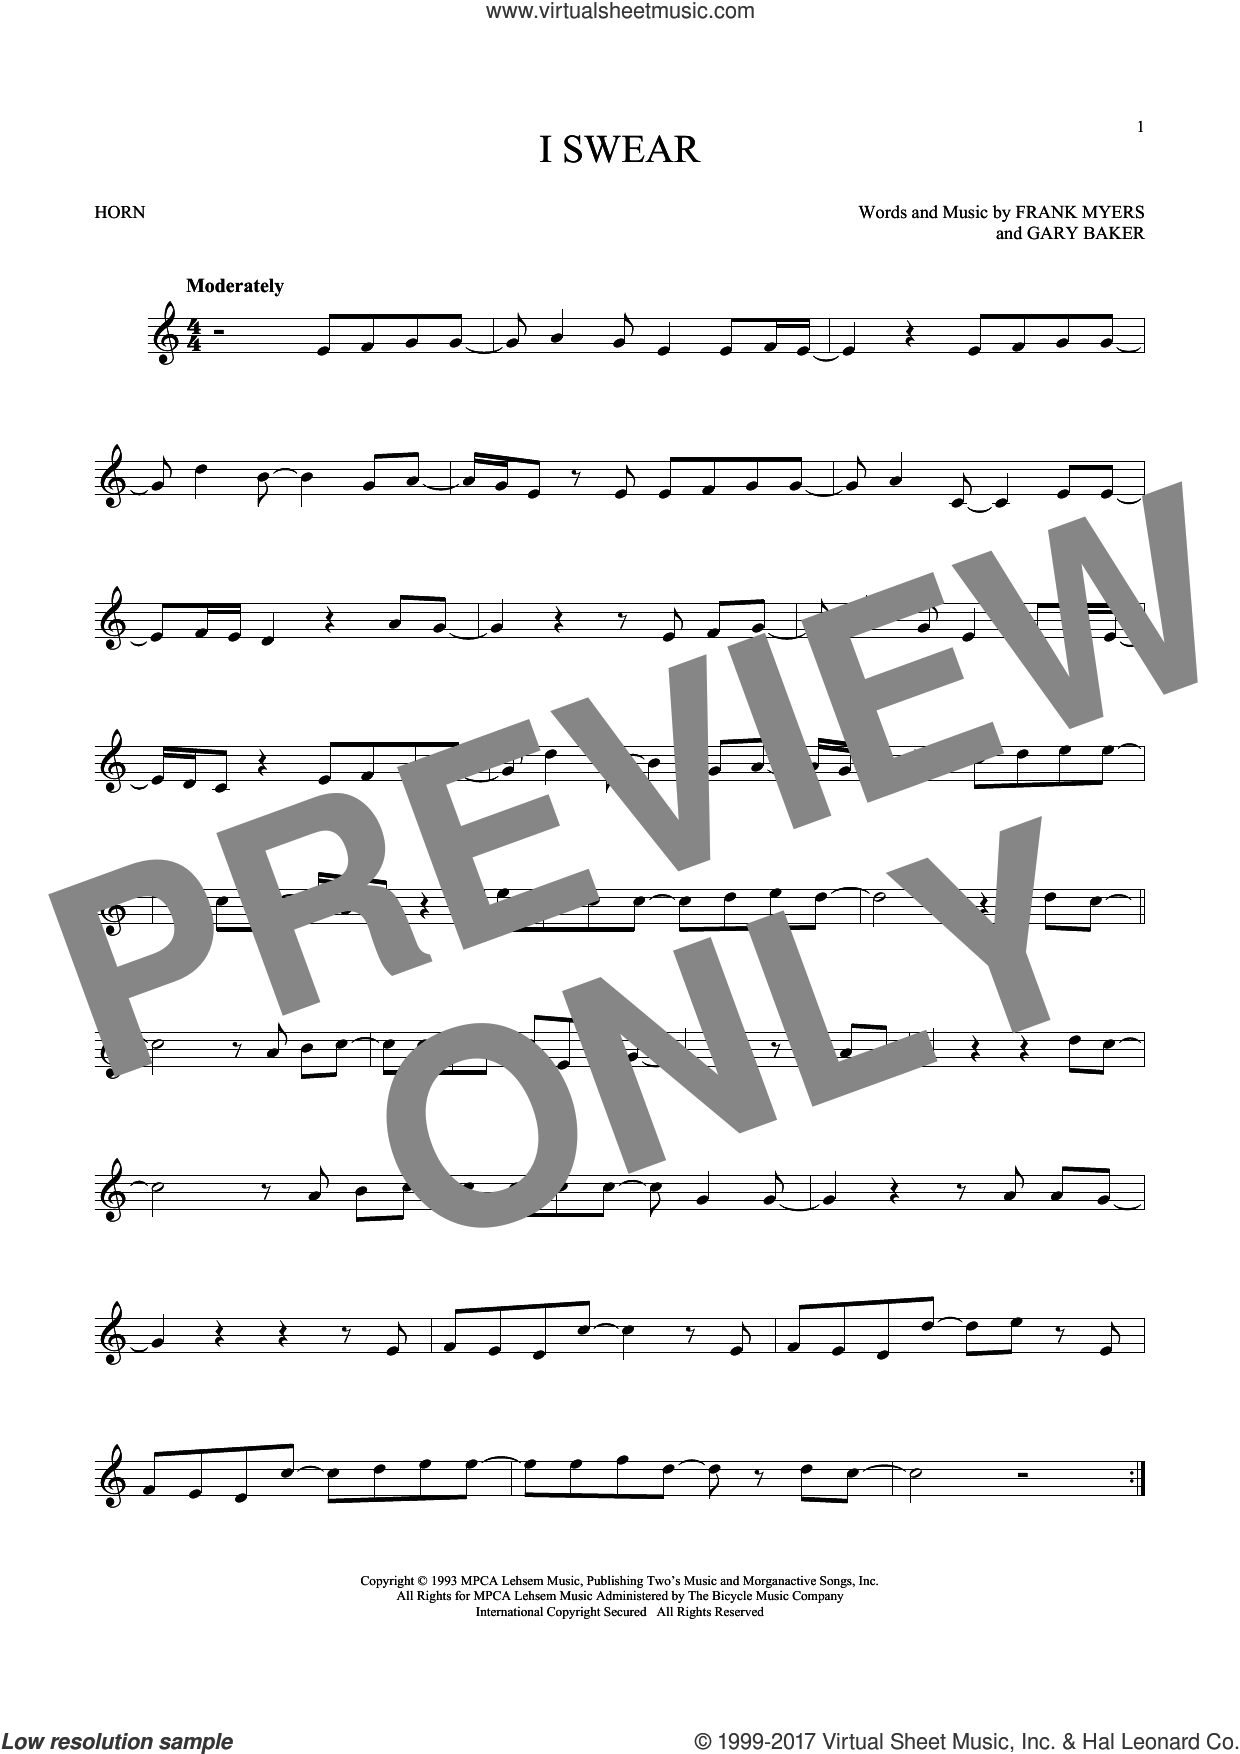 I Swear sheet music for horn solo by All-4-One, Frank Myers and Gary Baker, wedding score, intermediate